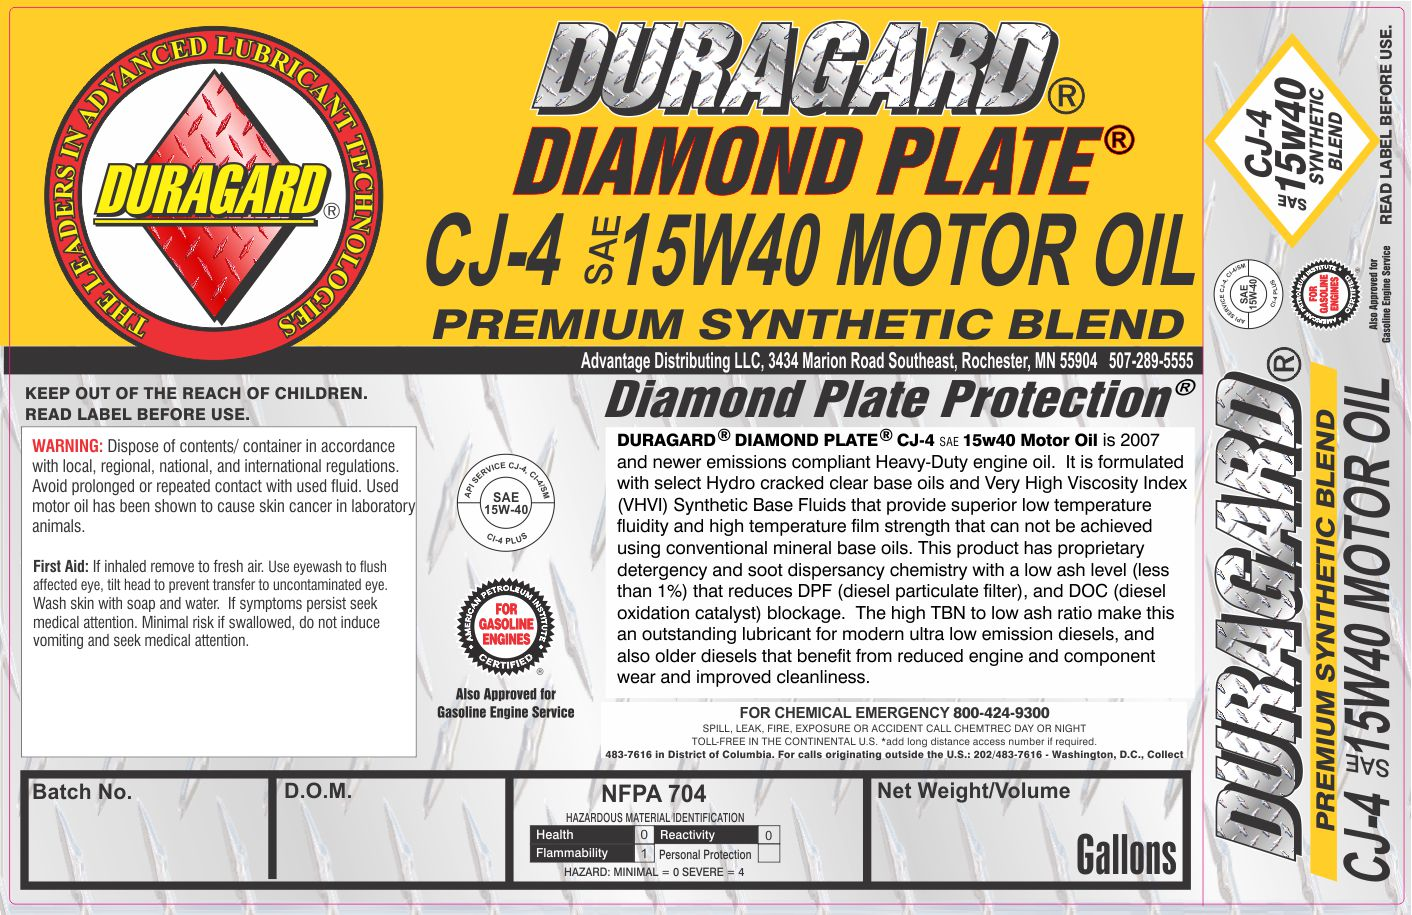 laser label chemical paladinid llc compliant ghs drum diamond printer